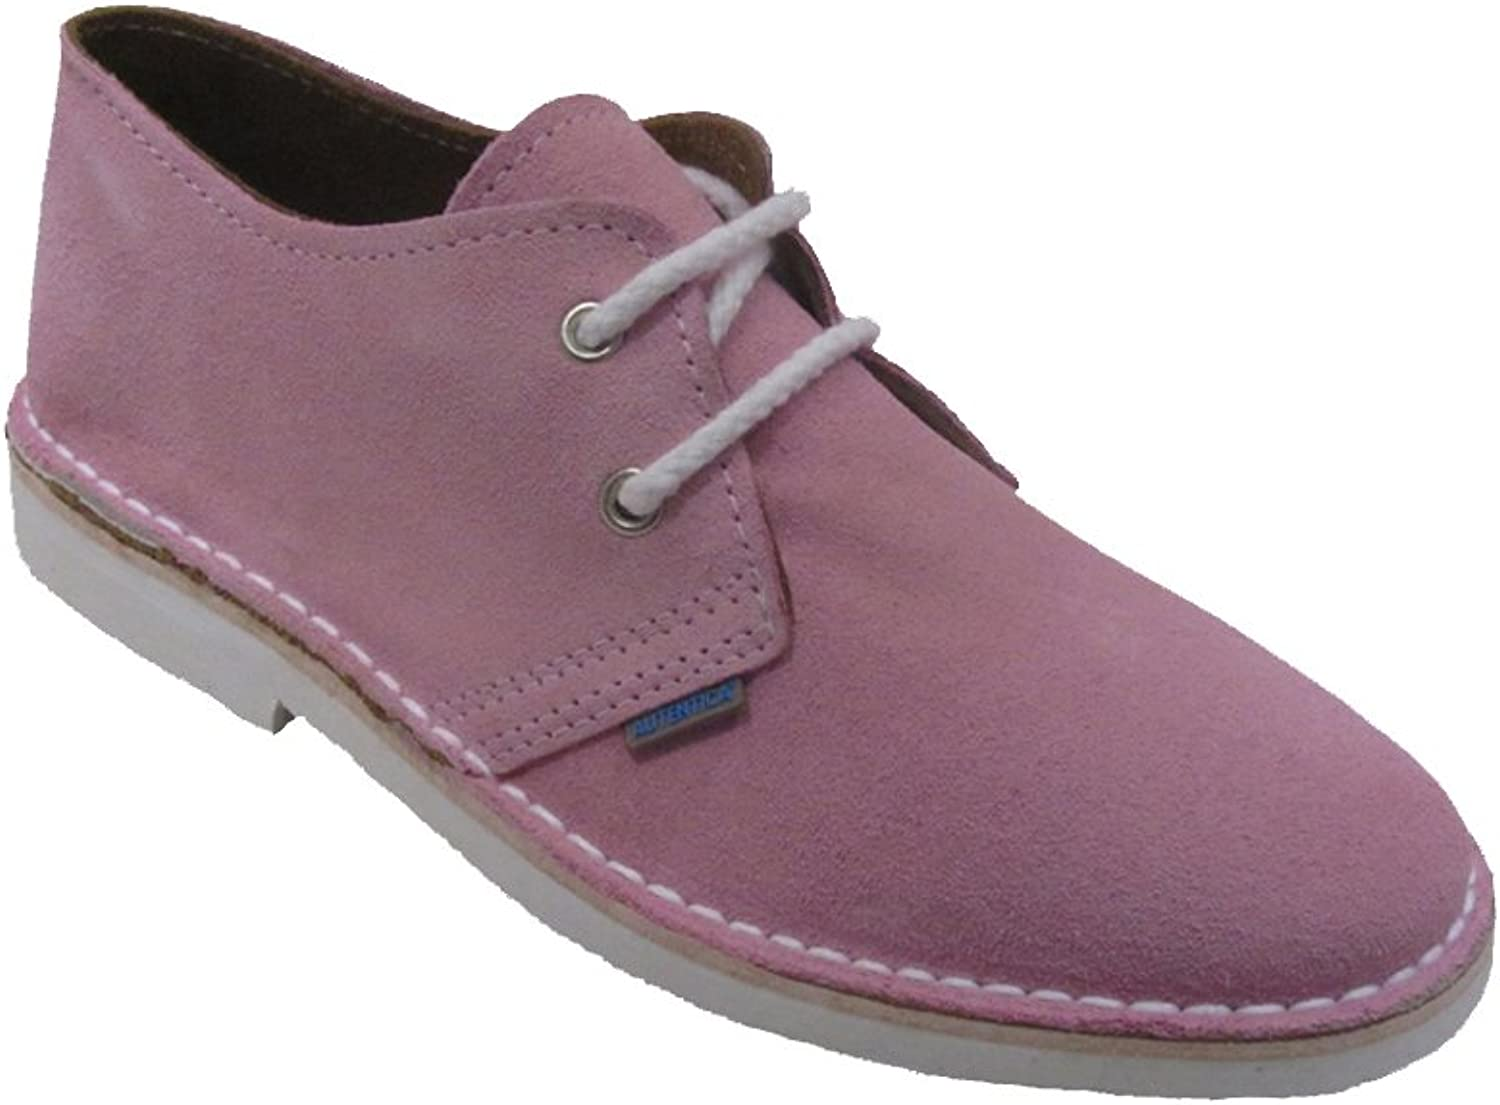 La Auténtica K901PC - Suede shoes with Combined colors, Unisex Adult, Pink Baby - White